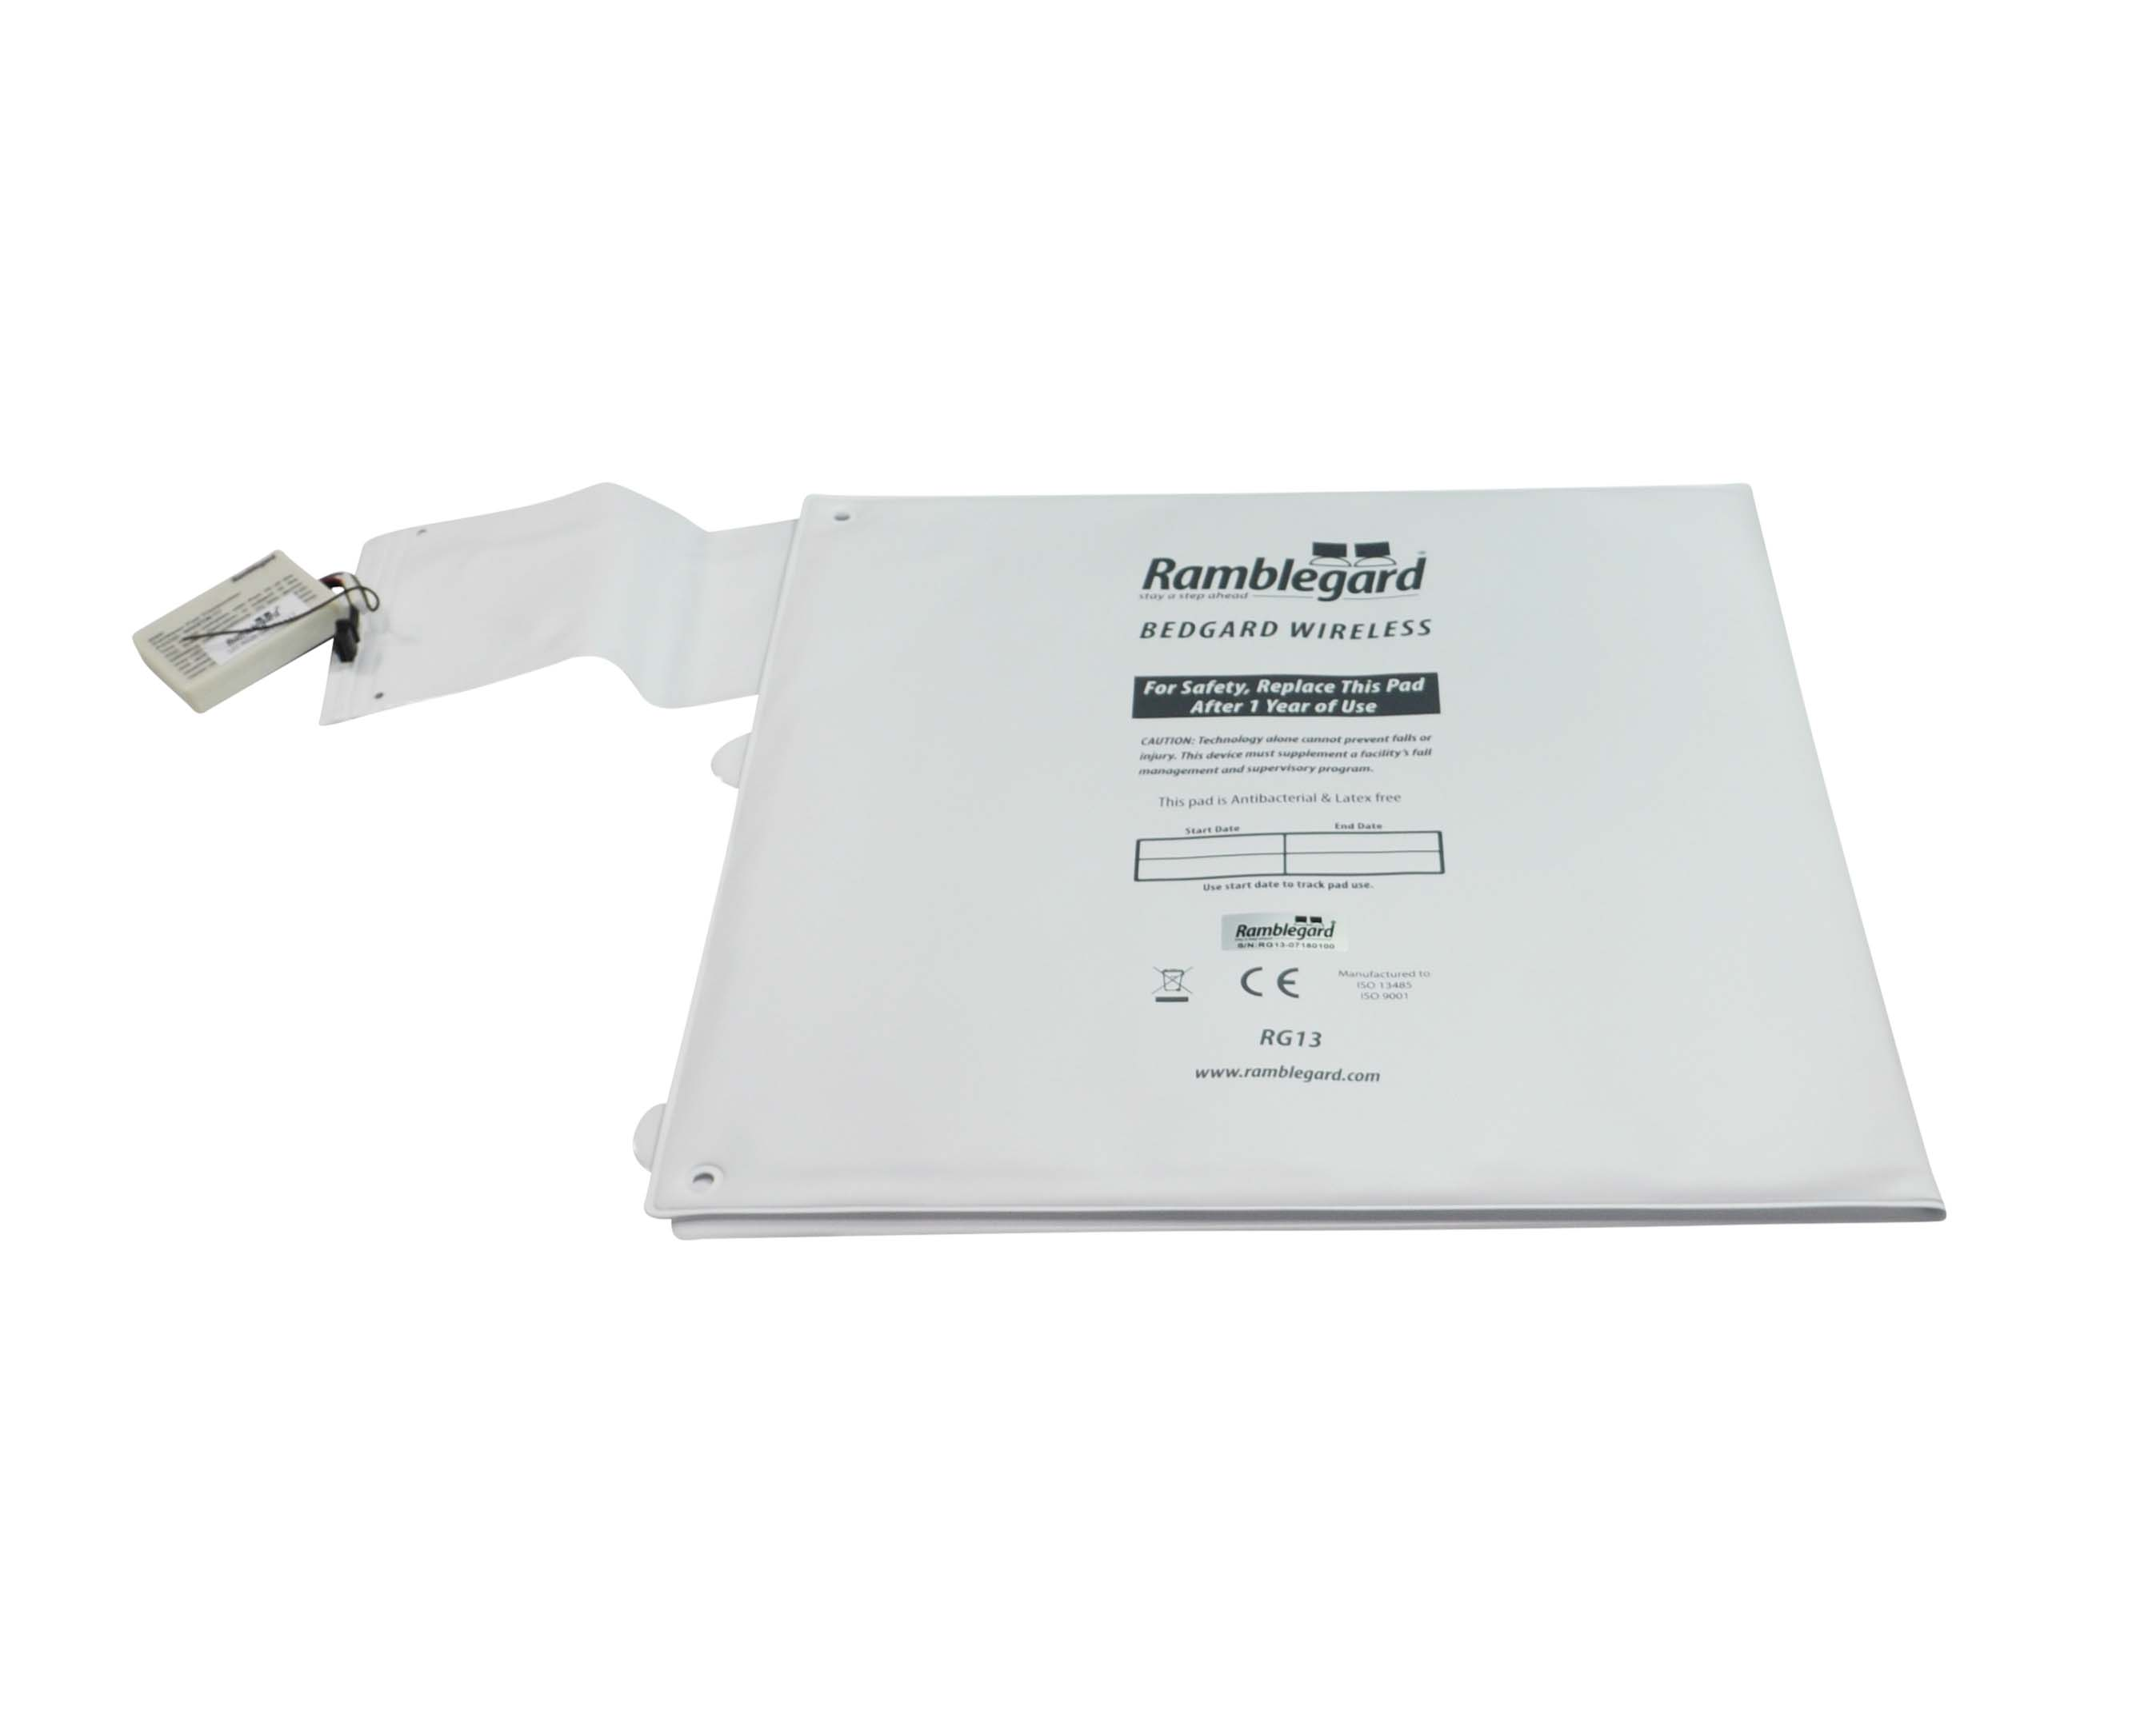 Wireless Bedgard Mat Only (RG47)